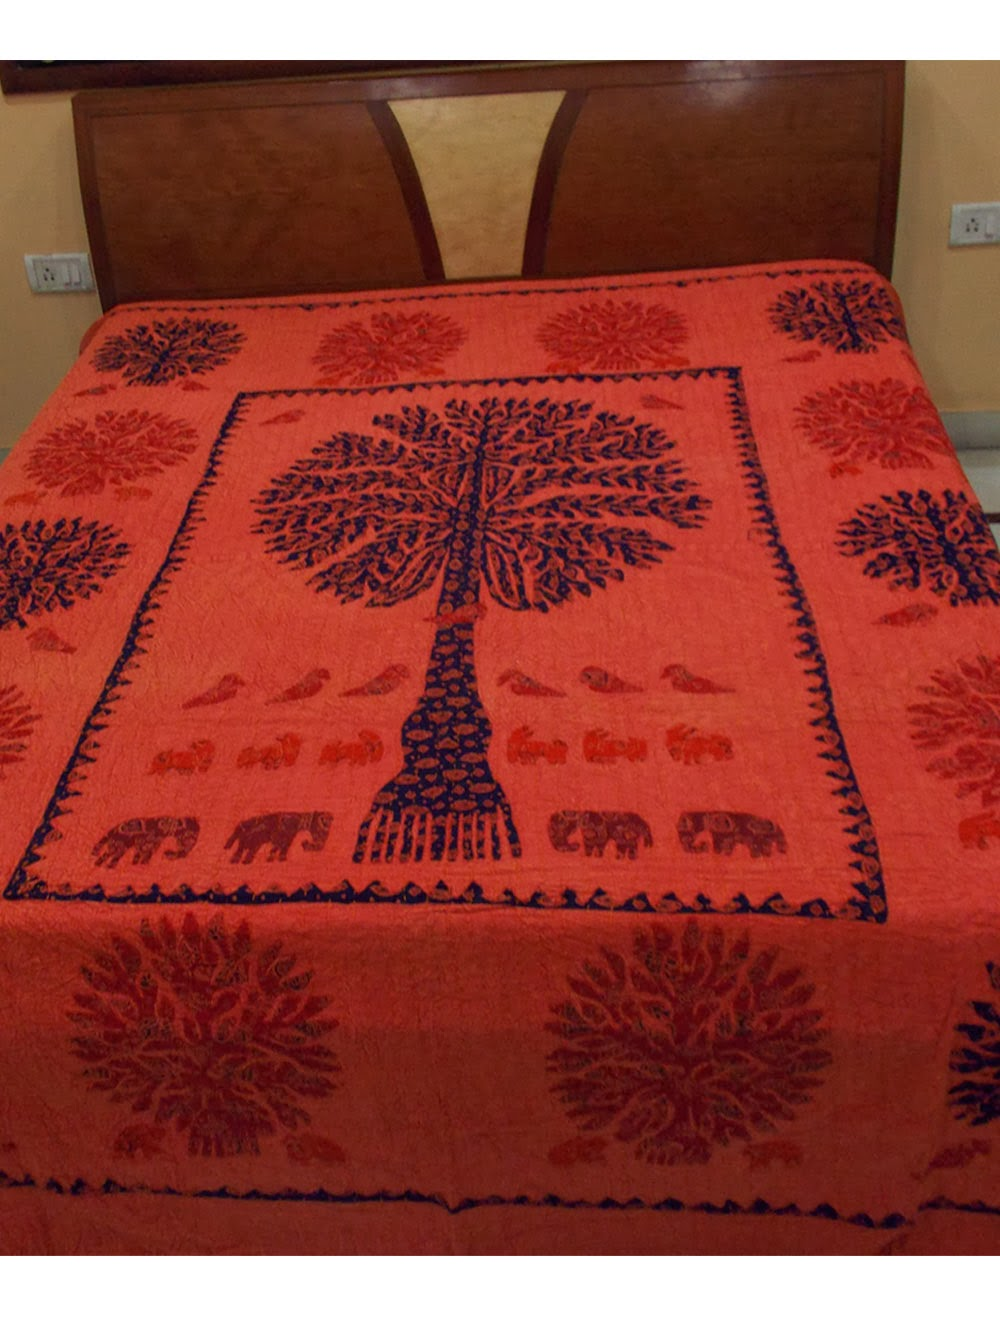 Bed sheets designs patchwork -  Is Known For Its Supreme Handicrafts This State Has Also Acquired A Big Name In Apparels Home Furnishing Exclusively Designed Bed Sheets Are The